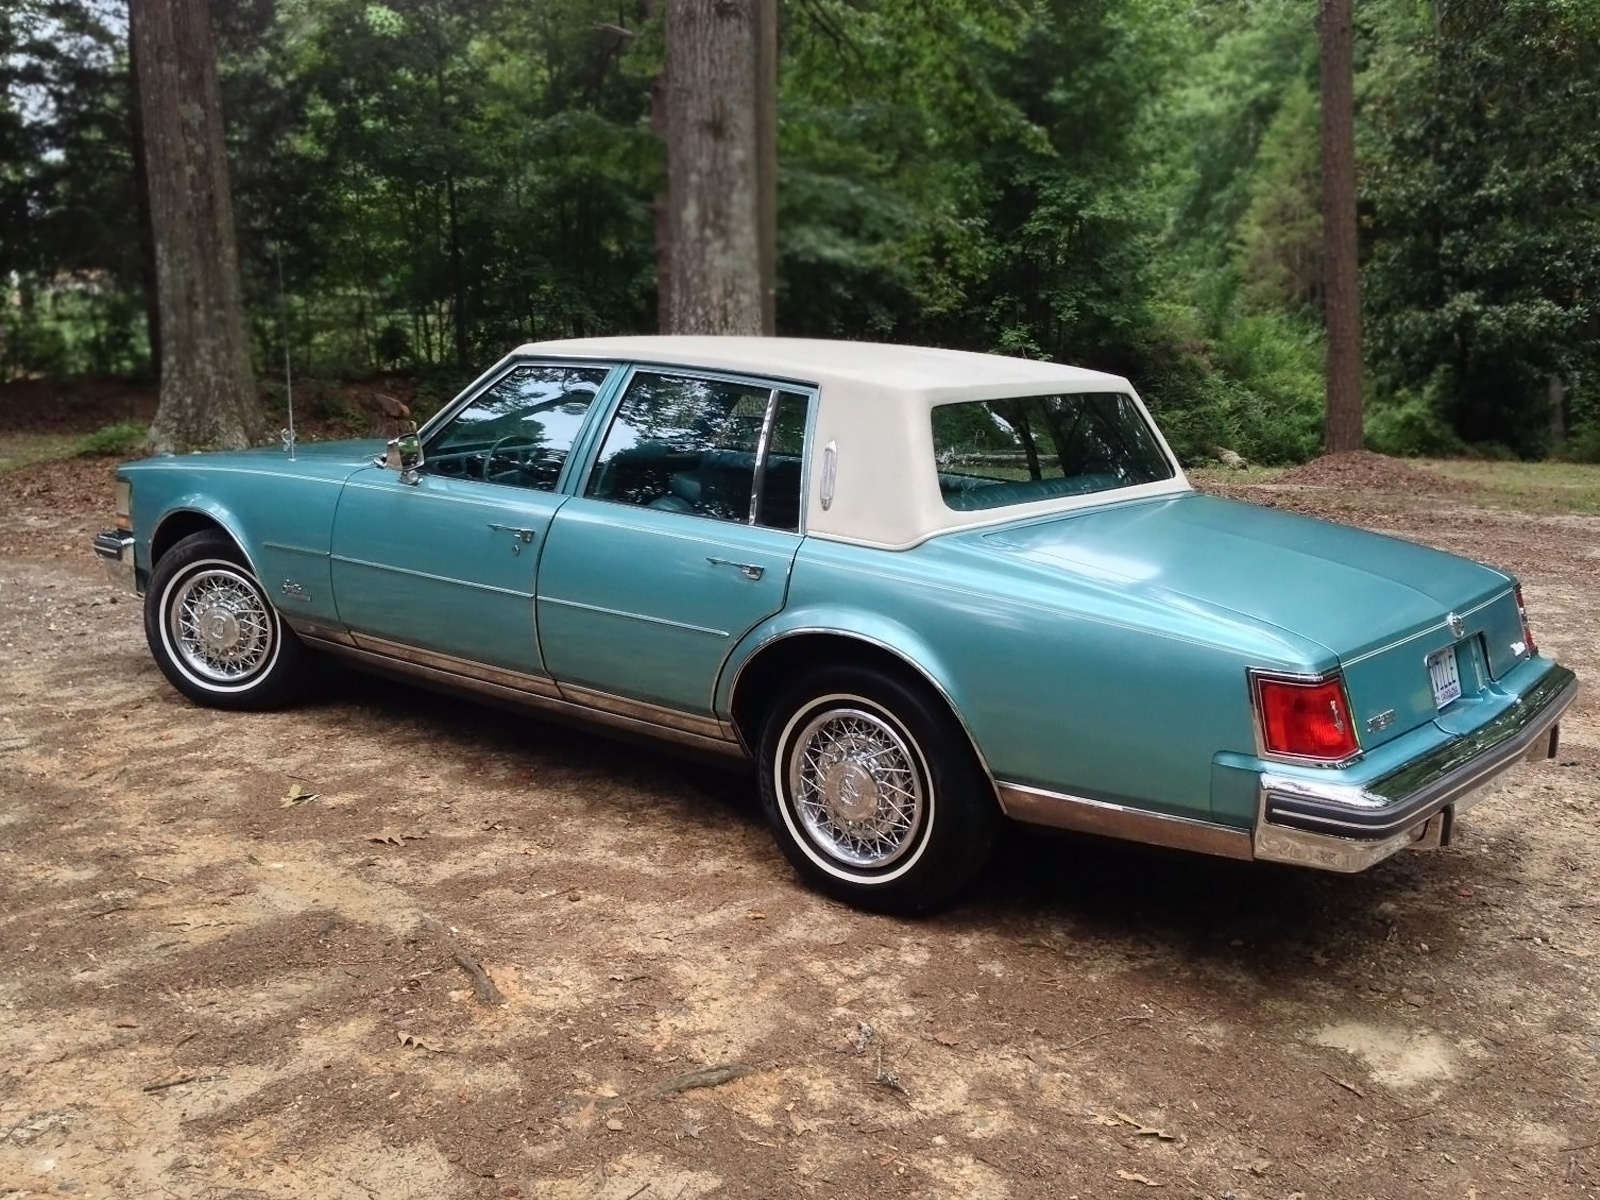 Time Capsule Cadillac 1979 Seville 1978 Deville Interior 100516 Barn Finds 2